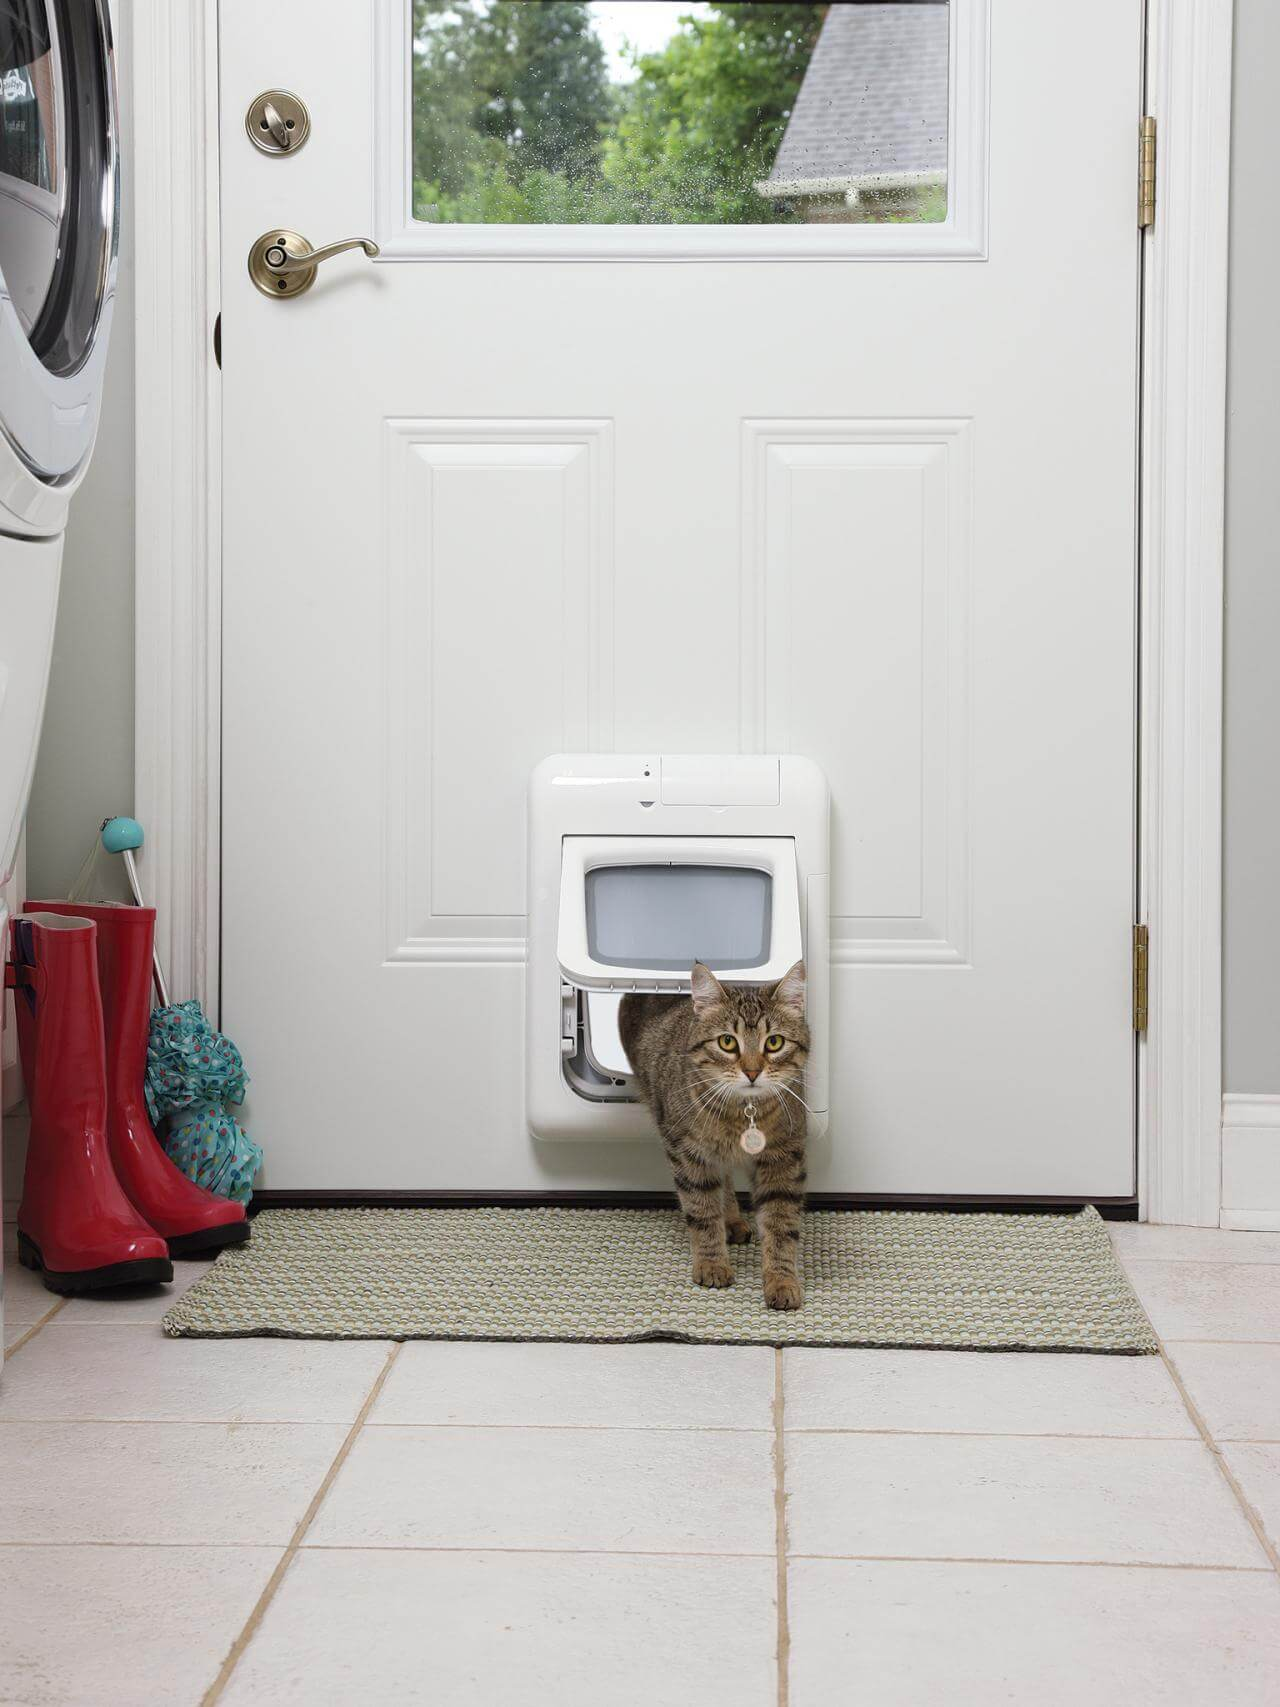 Even the cat can benefit from a similar door.